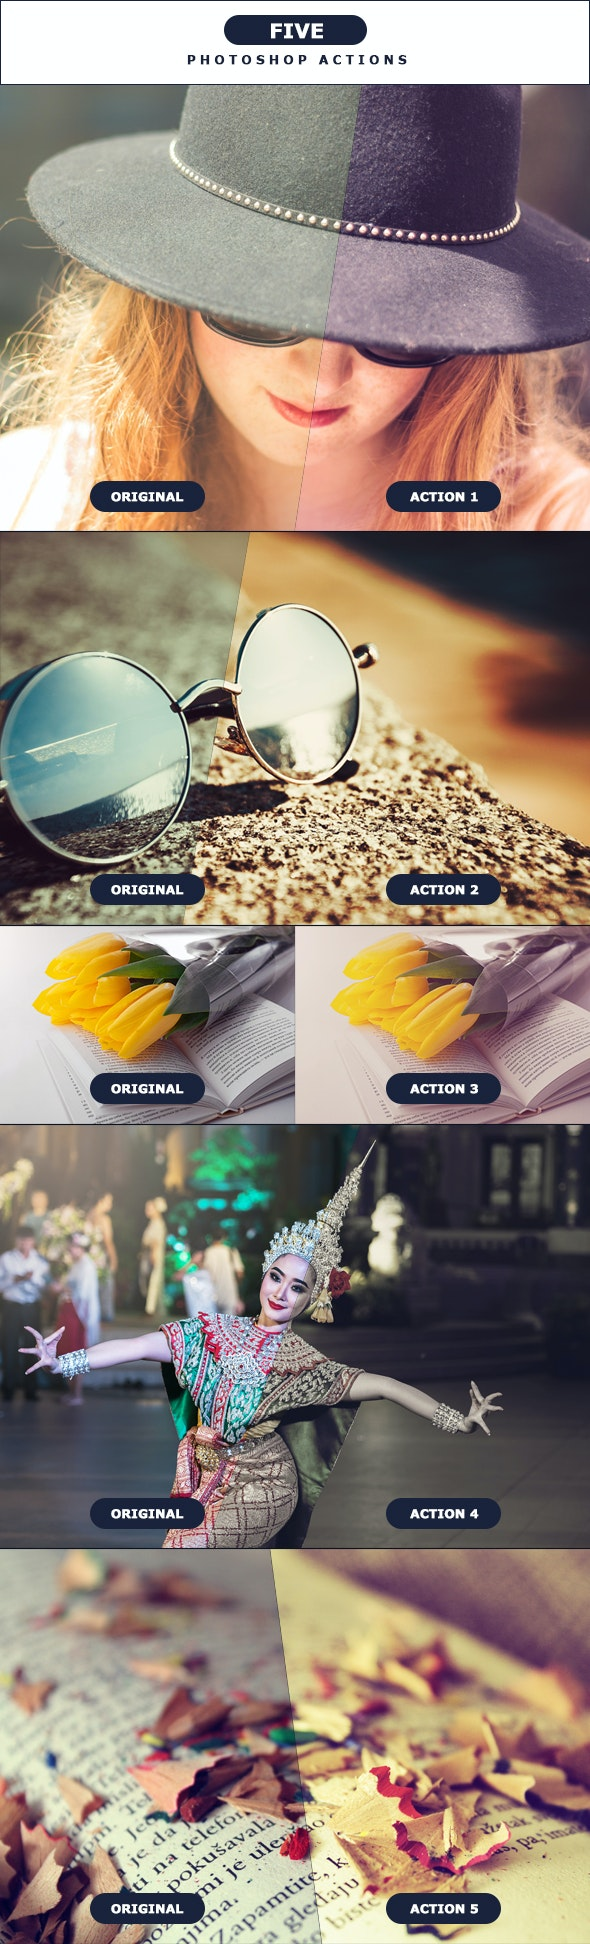 FIVE - Photoshop Actions 3 - Photo Effects Actions